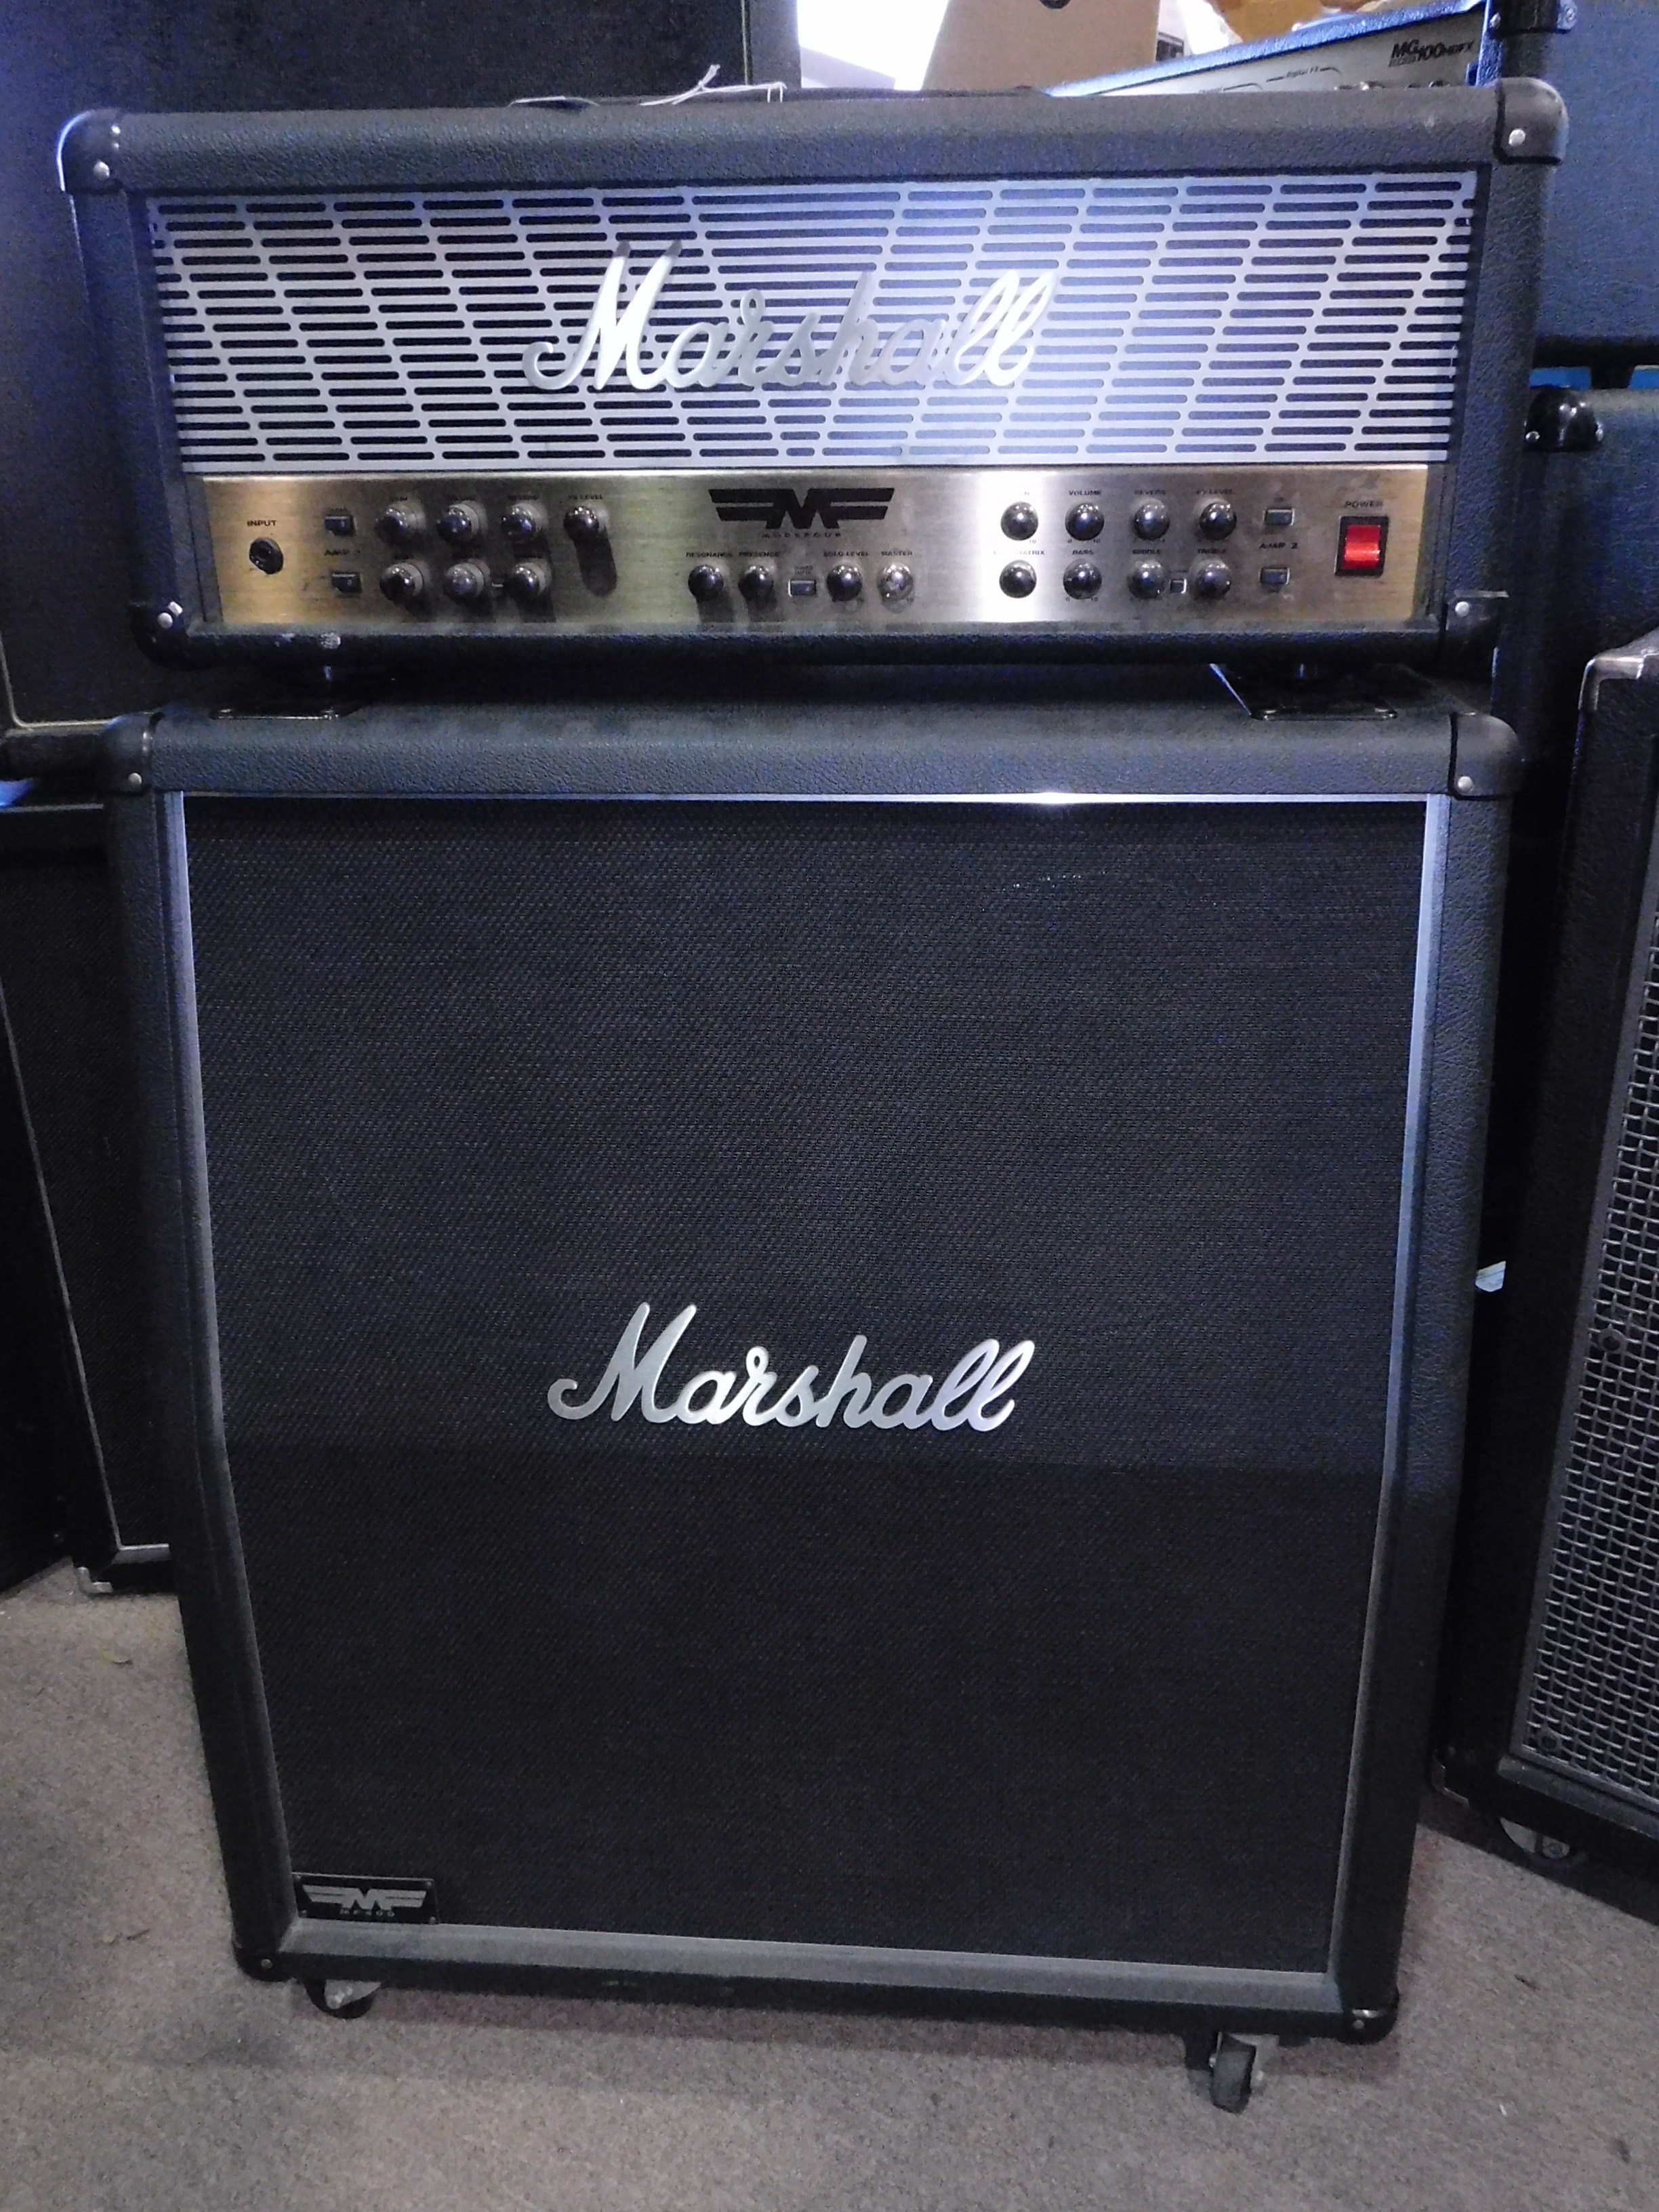 MARSHALL MF350 MODE 4 HALF STACK w/Matching MF400 4x12 Marshall Cab!!